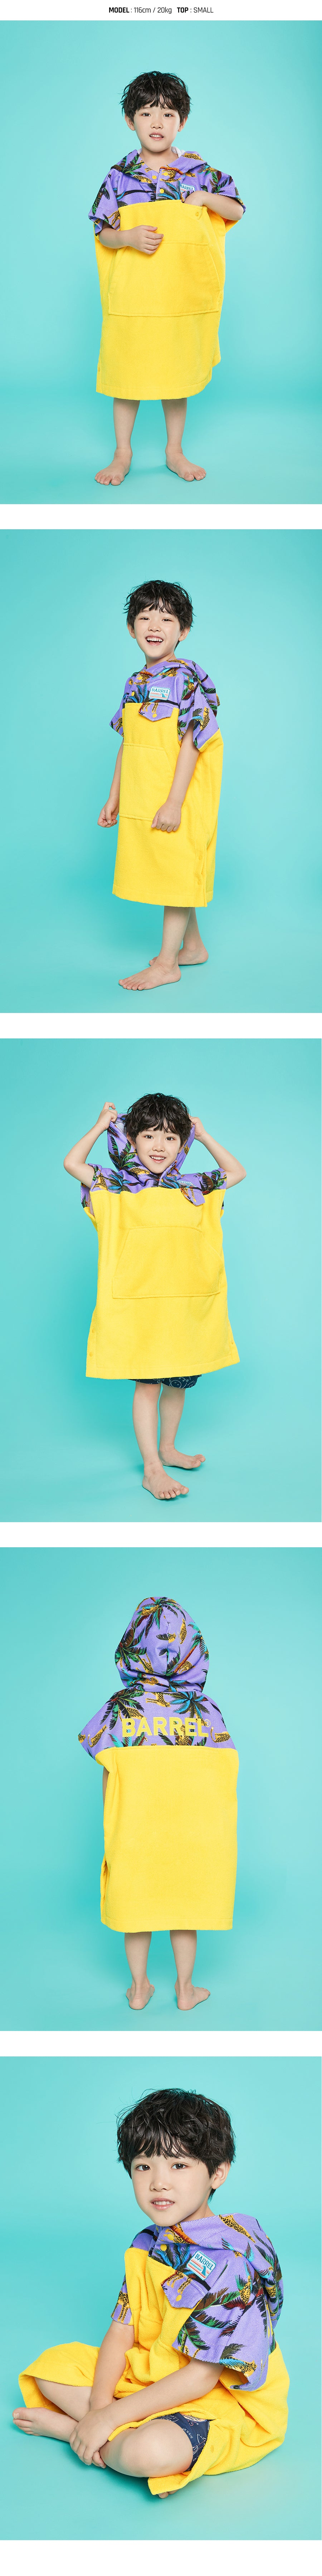 Barrel Kids Cozy Pocket Poncho Towel-SAVANA_image1